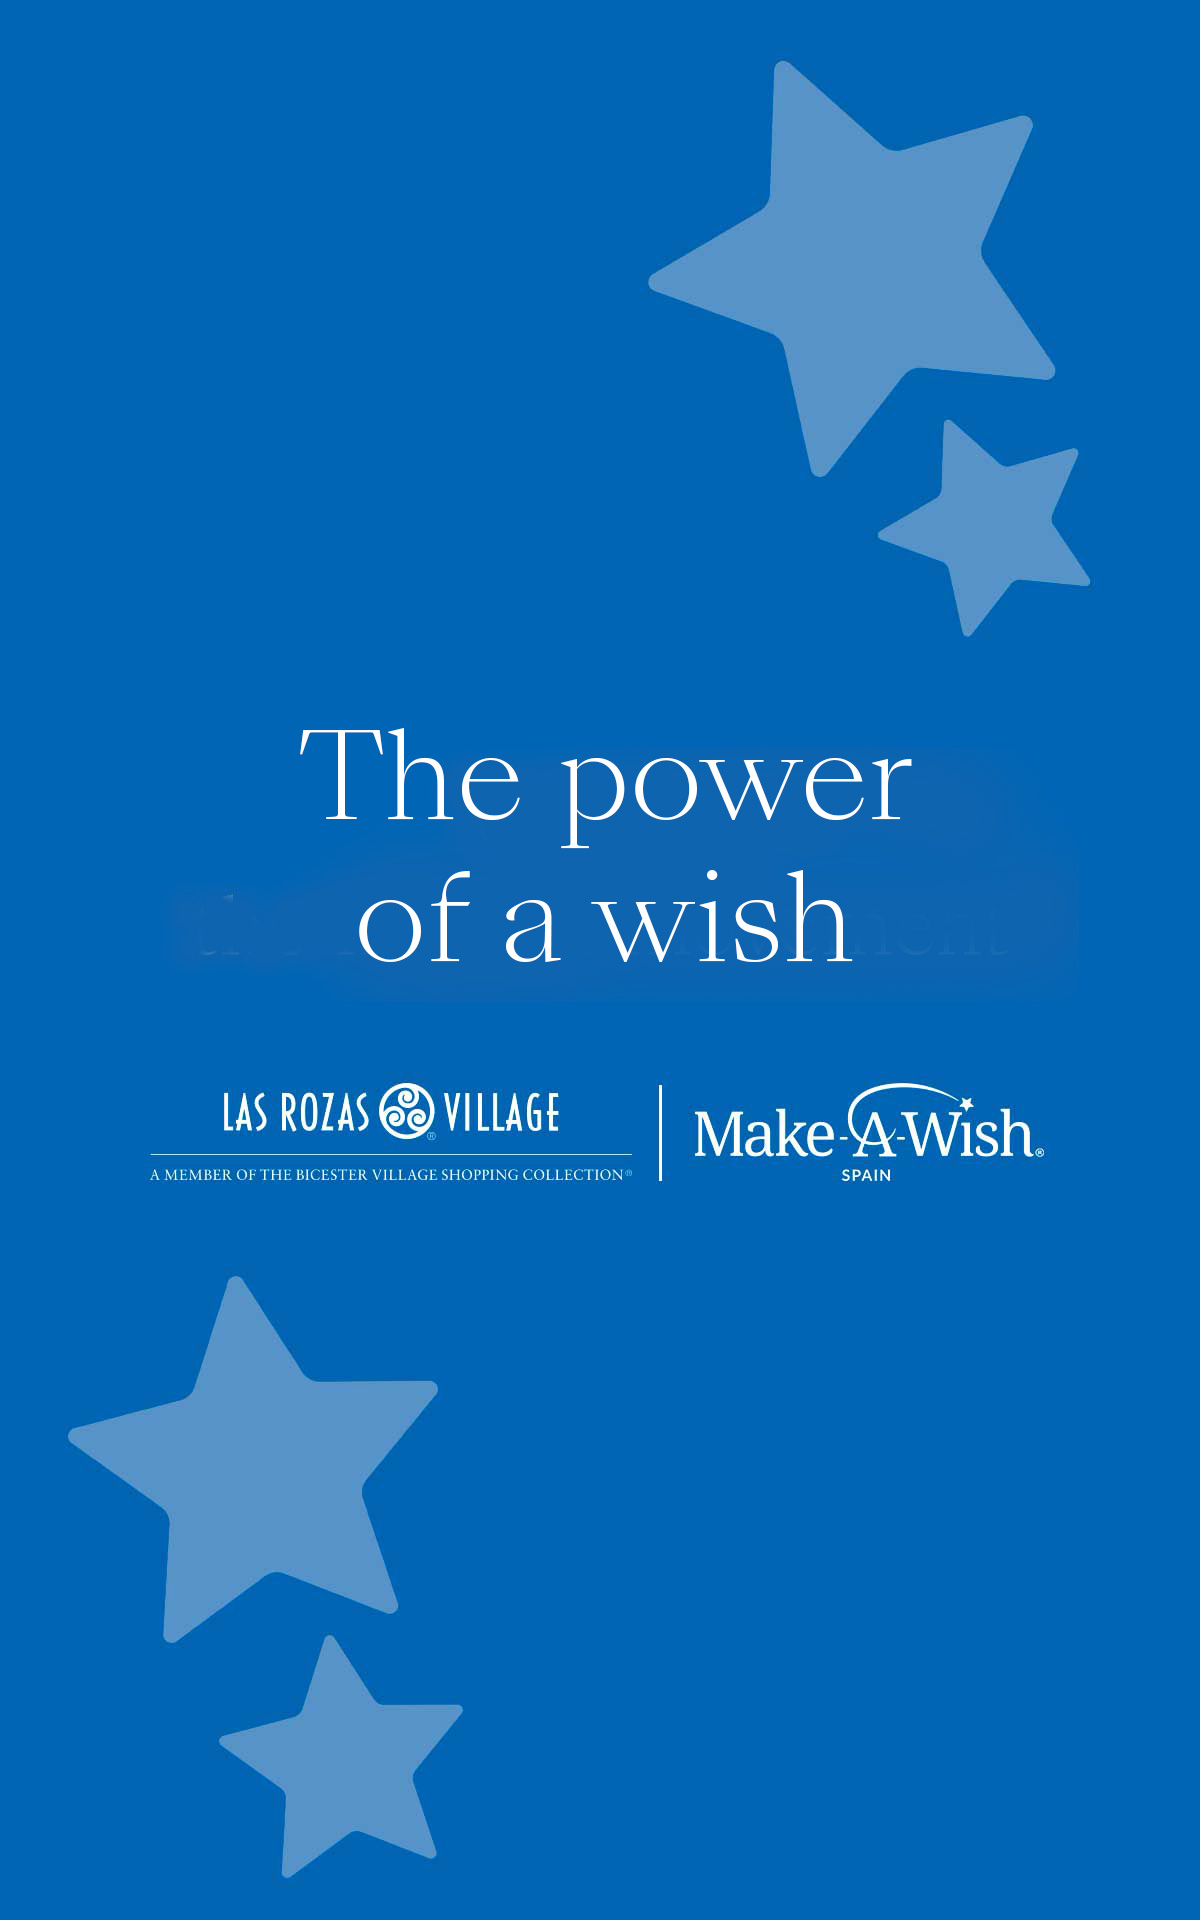 We join the illusion movement with Make A Wish